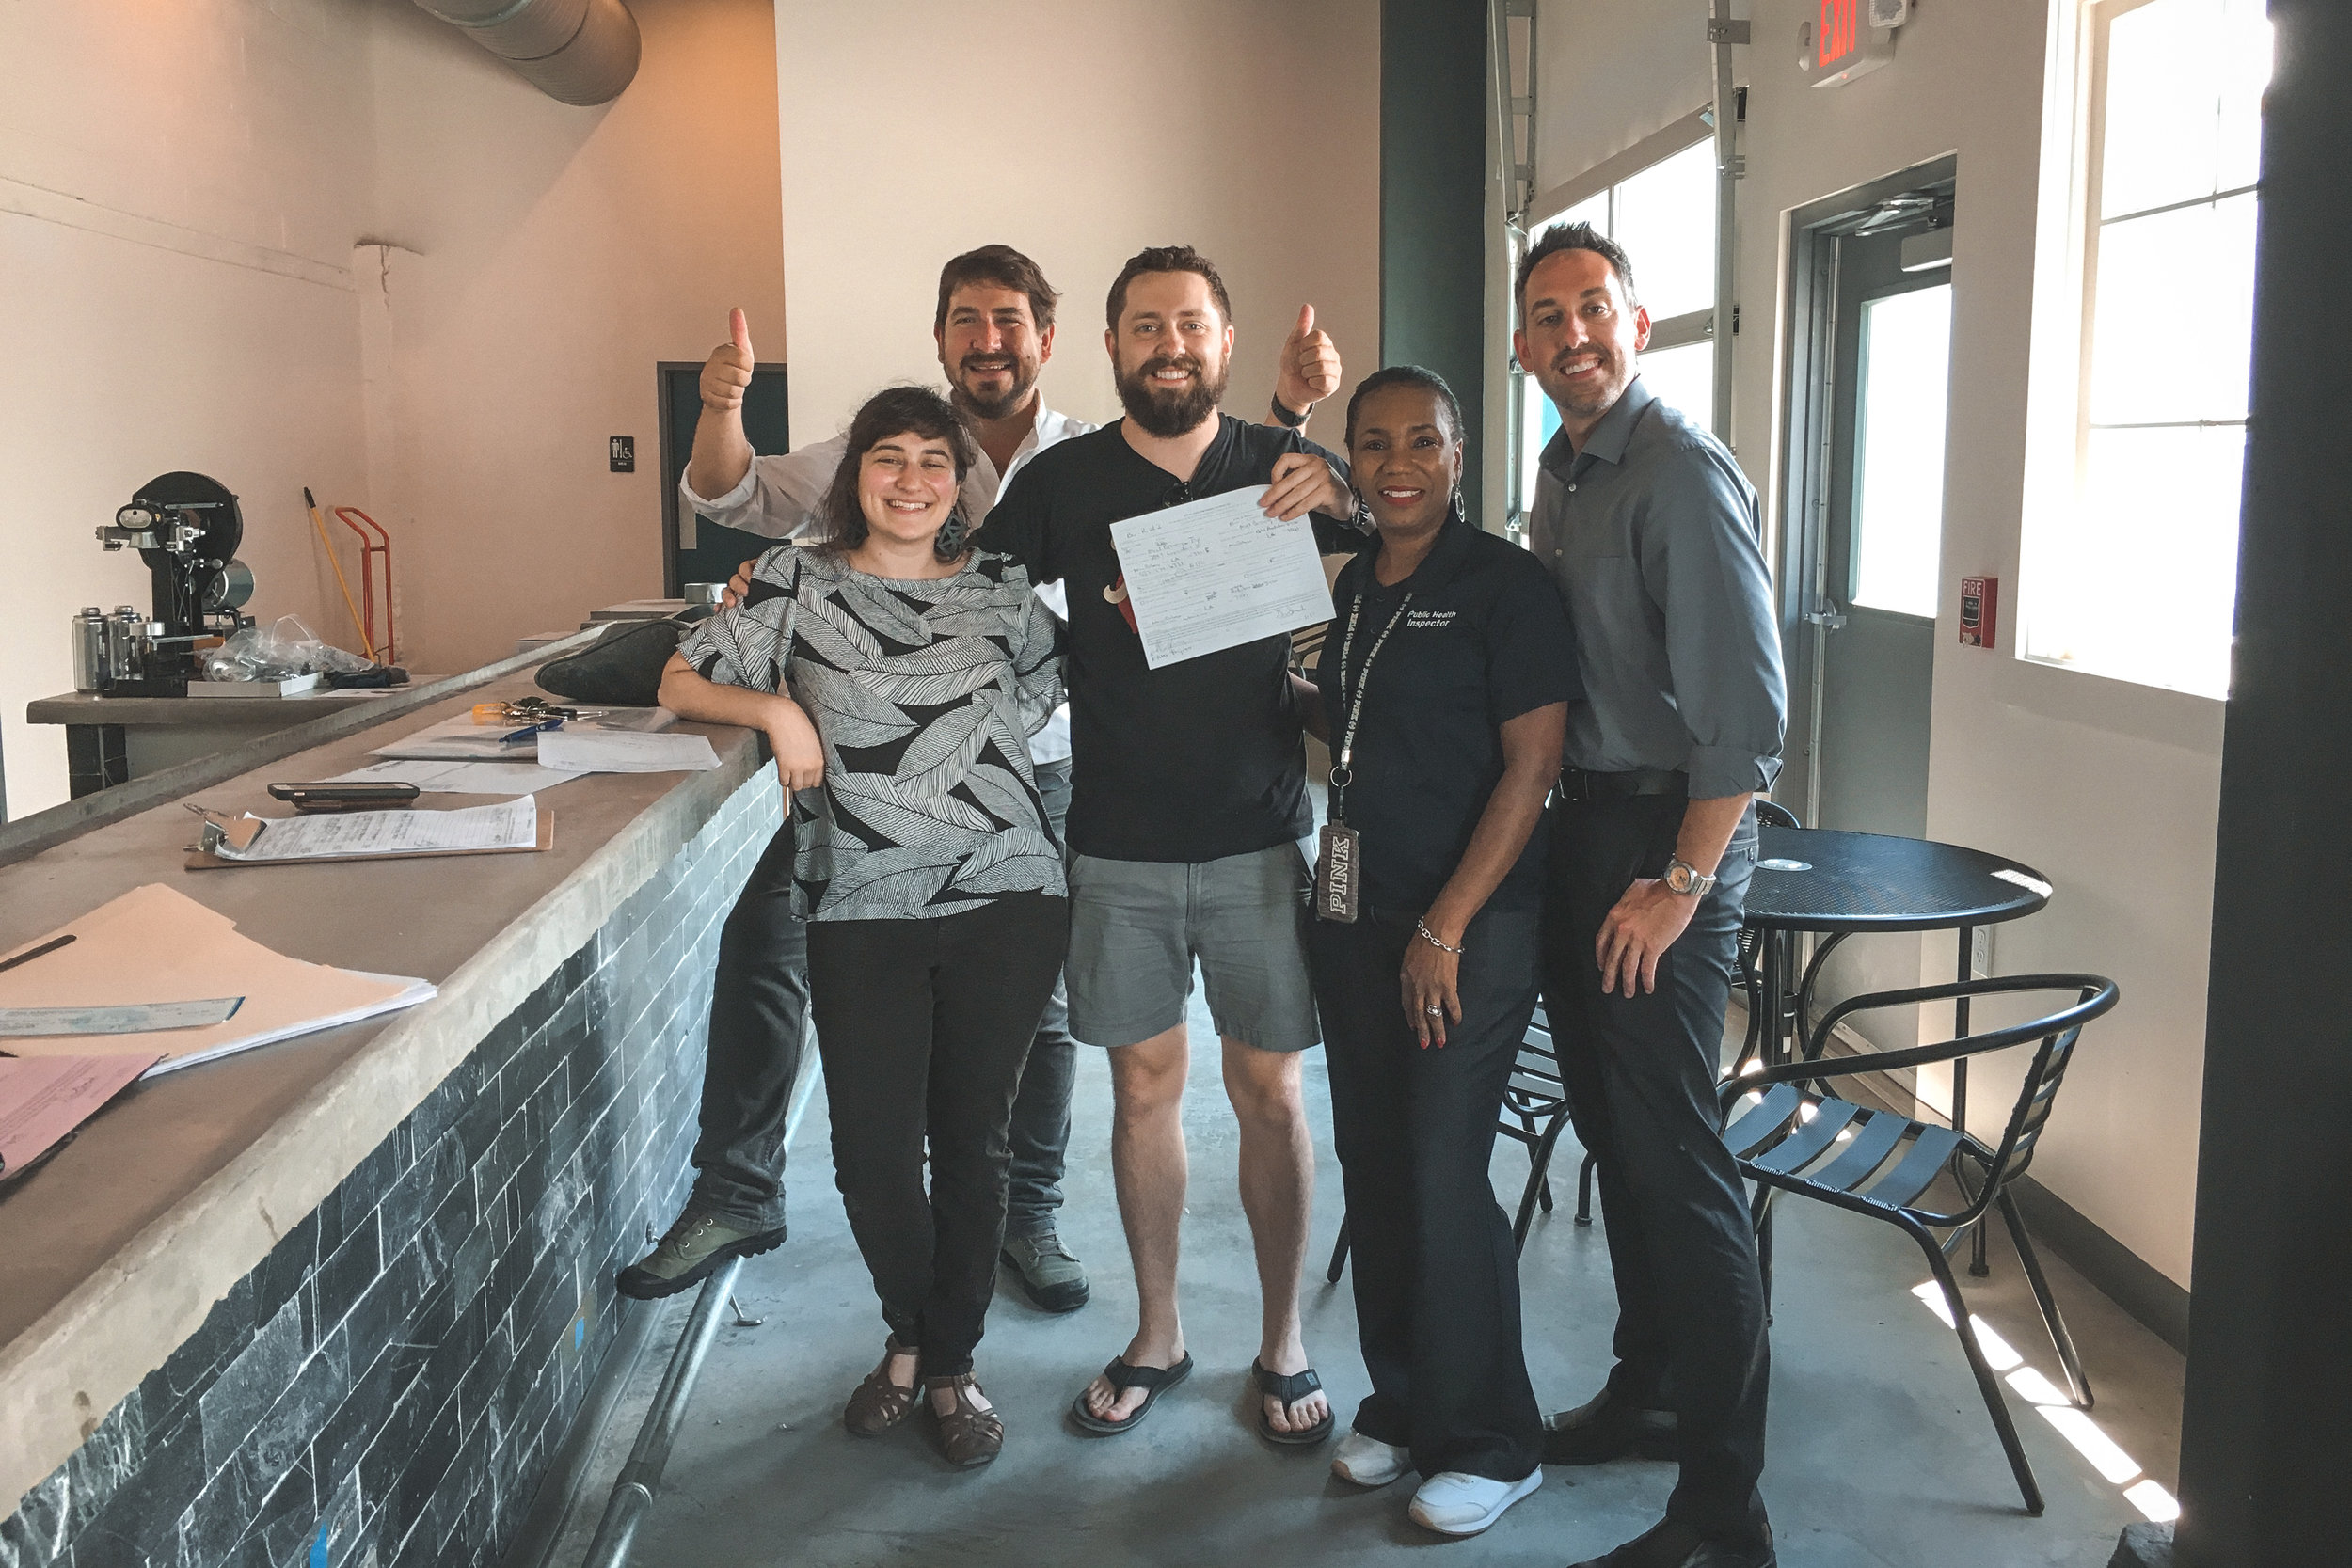 New Orleans_Miel Brewery_July 2018_Health Inspection